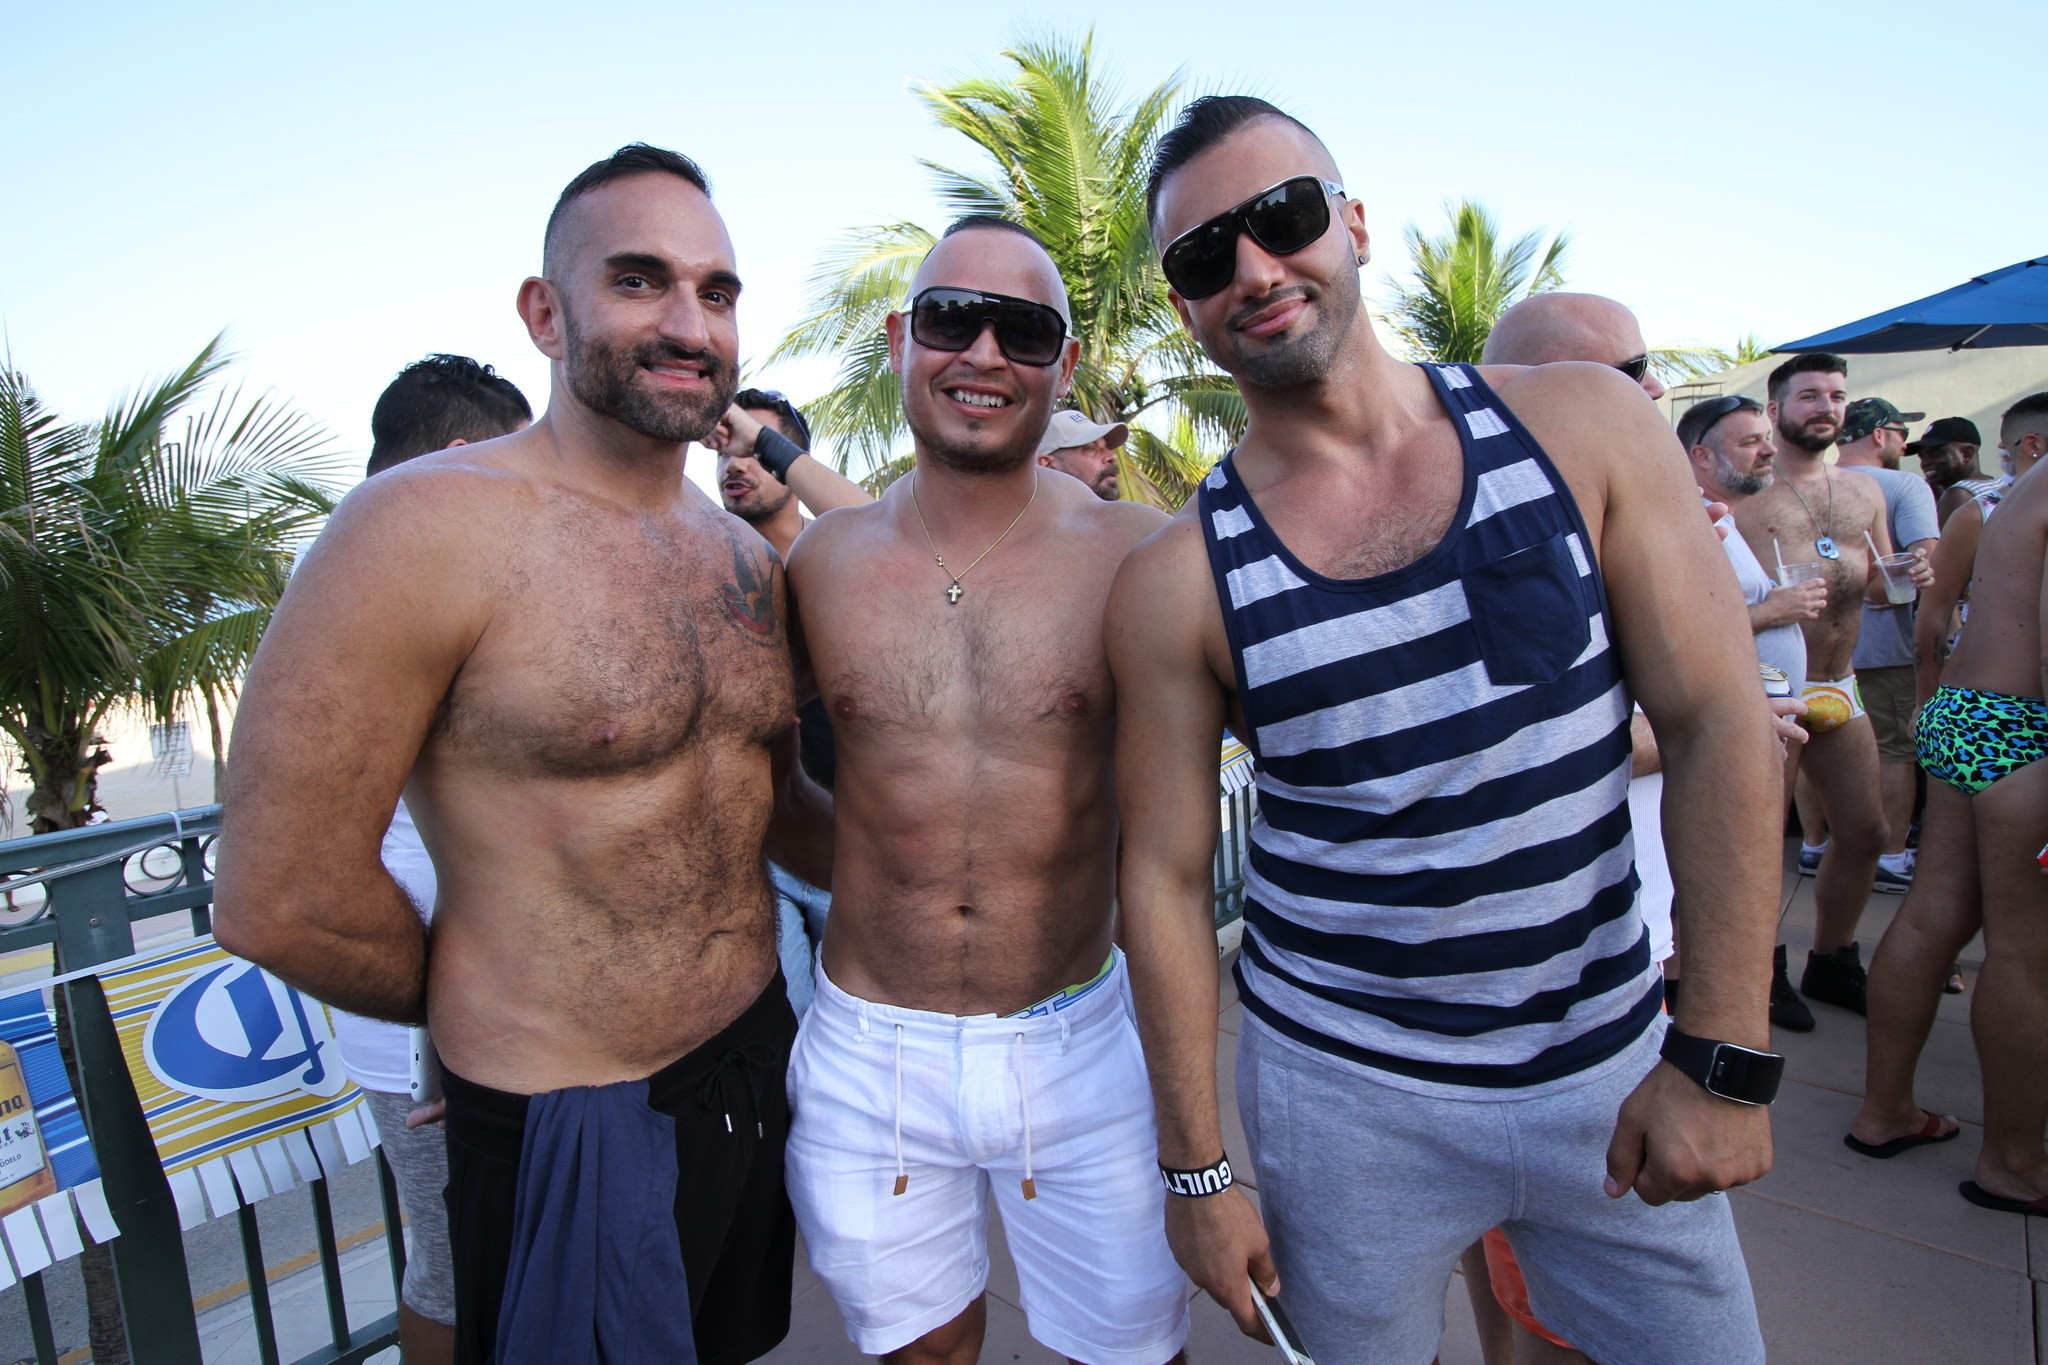 from Enoch fort lauderdale gay men